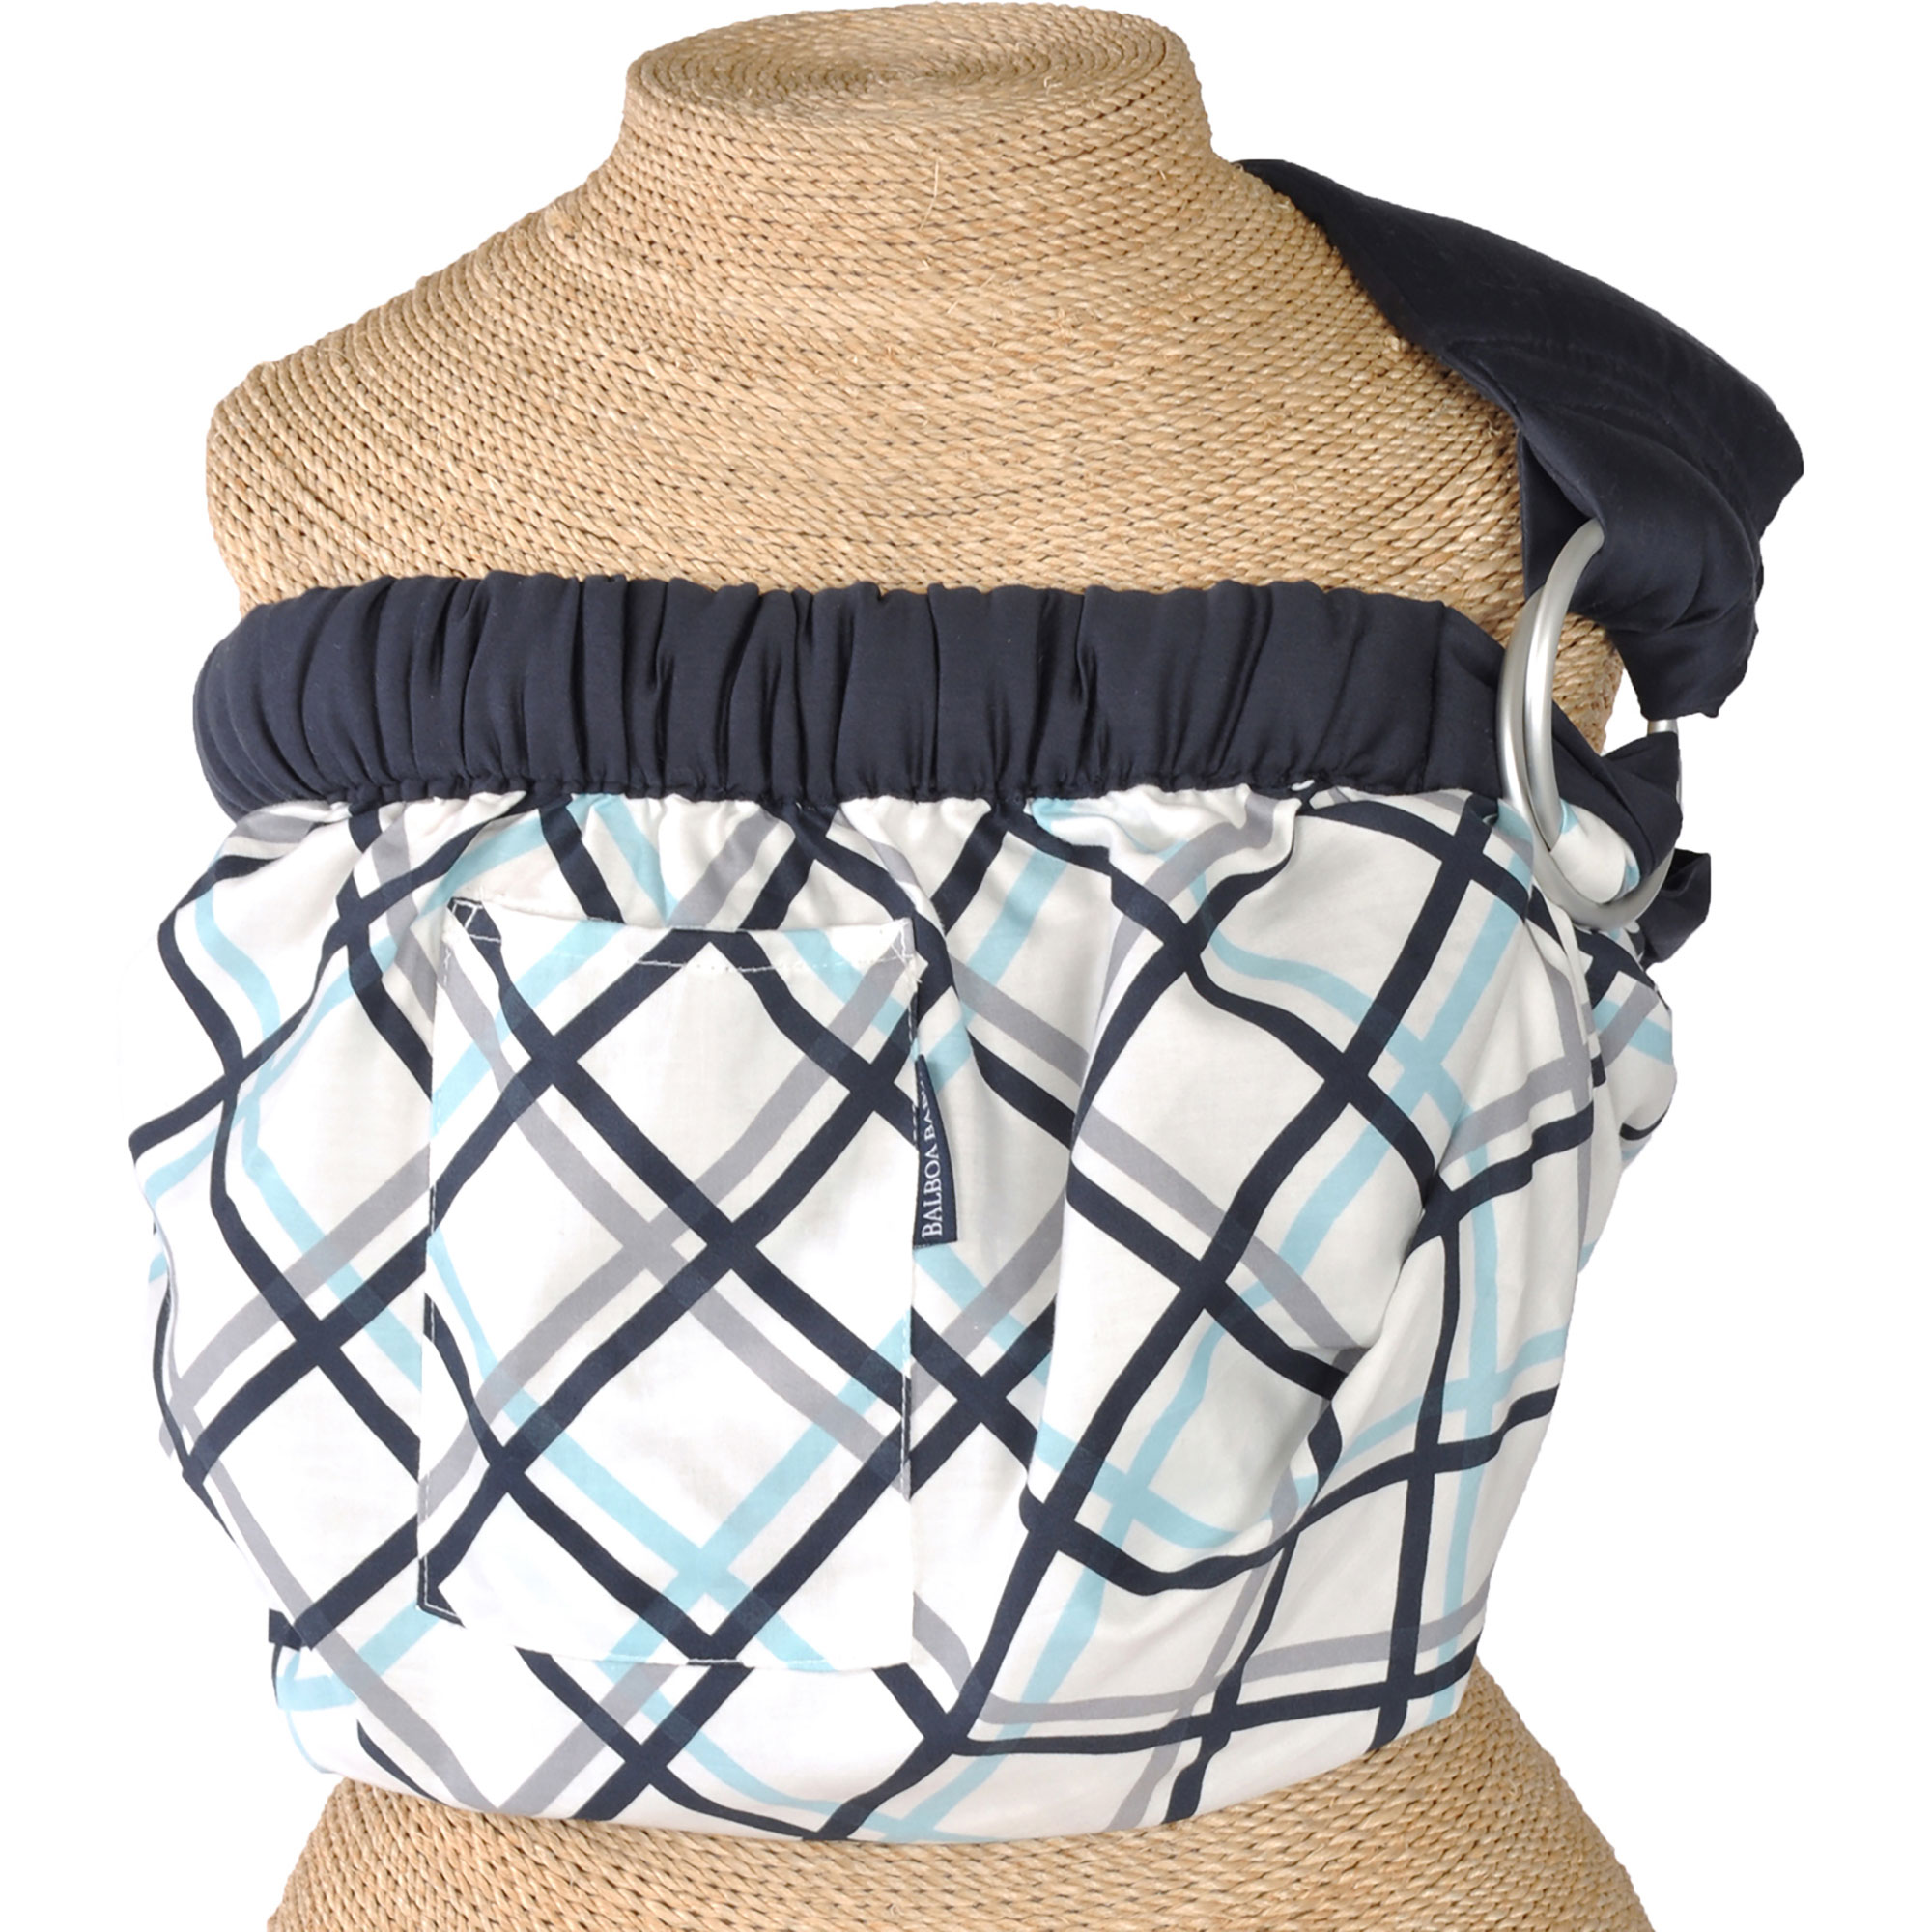 Balboa Baby Sling - Dr. Sears Adjustable Sling Carrier - Navy Plaid Design